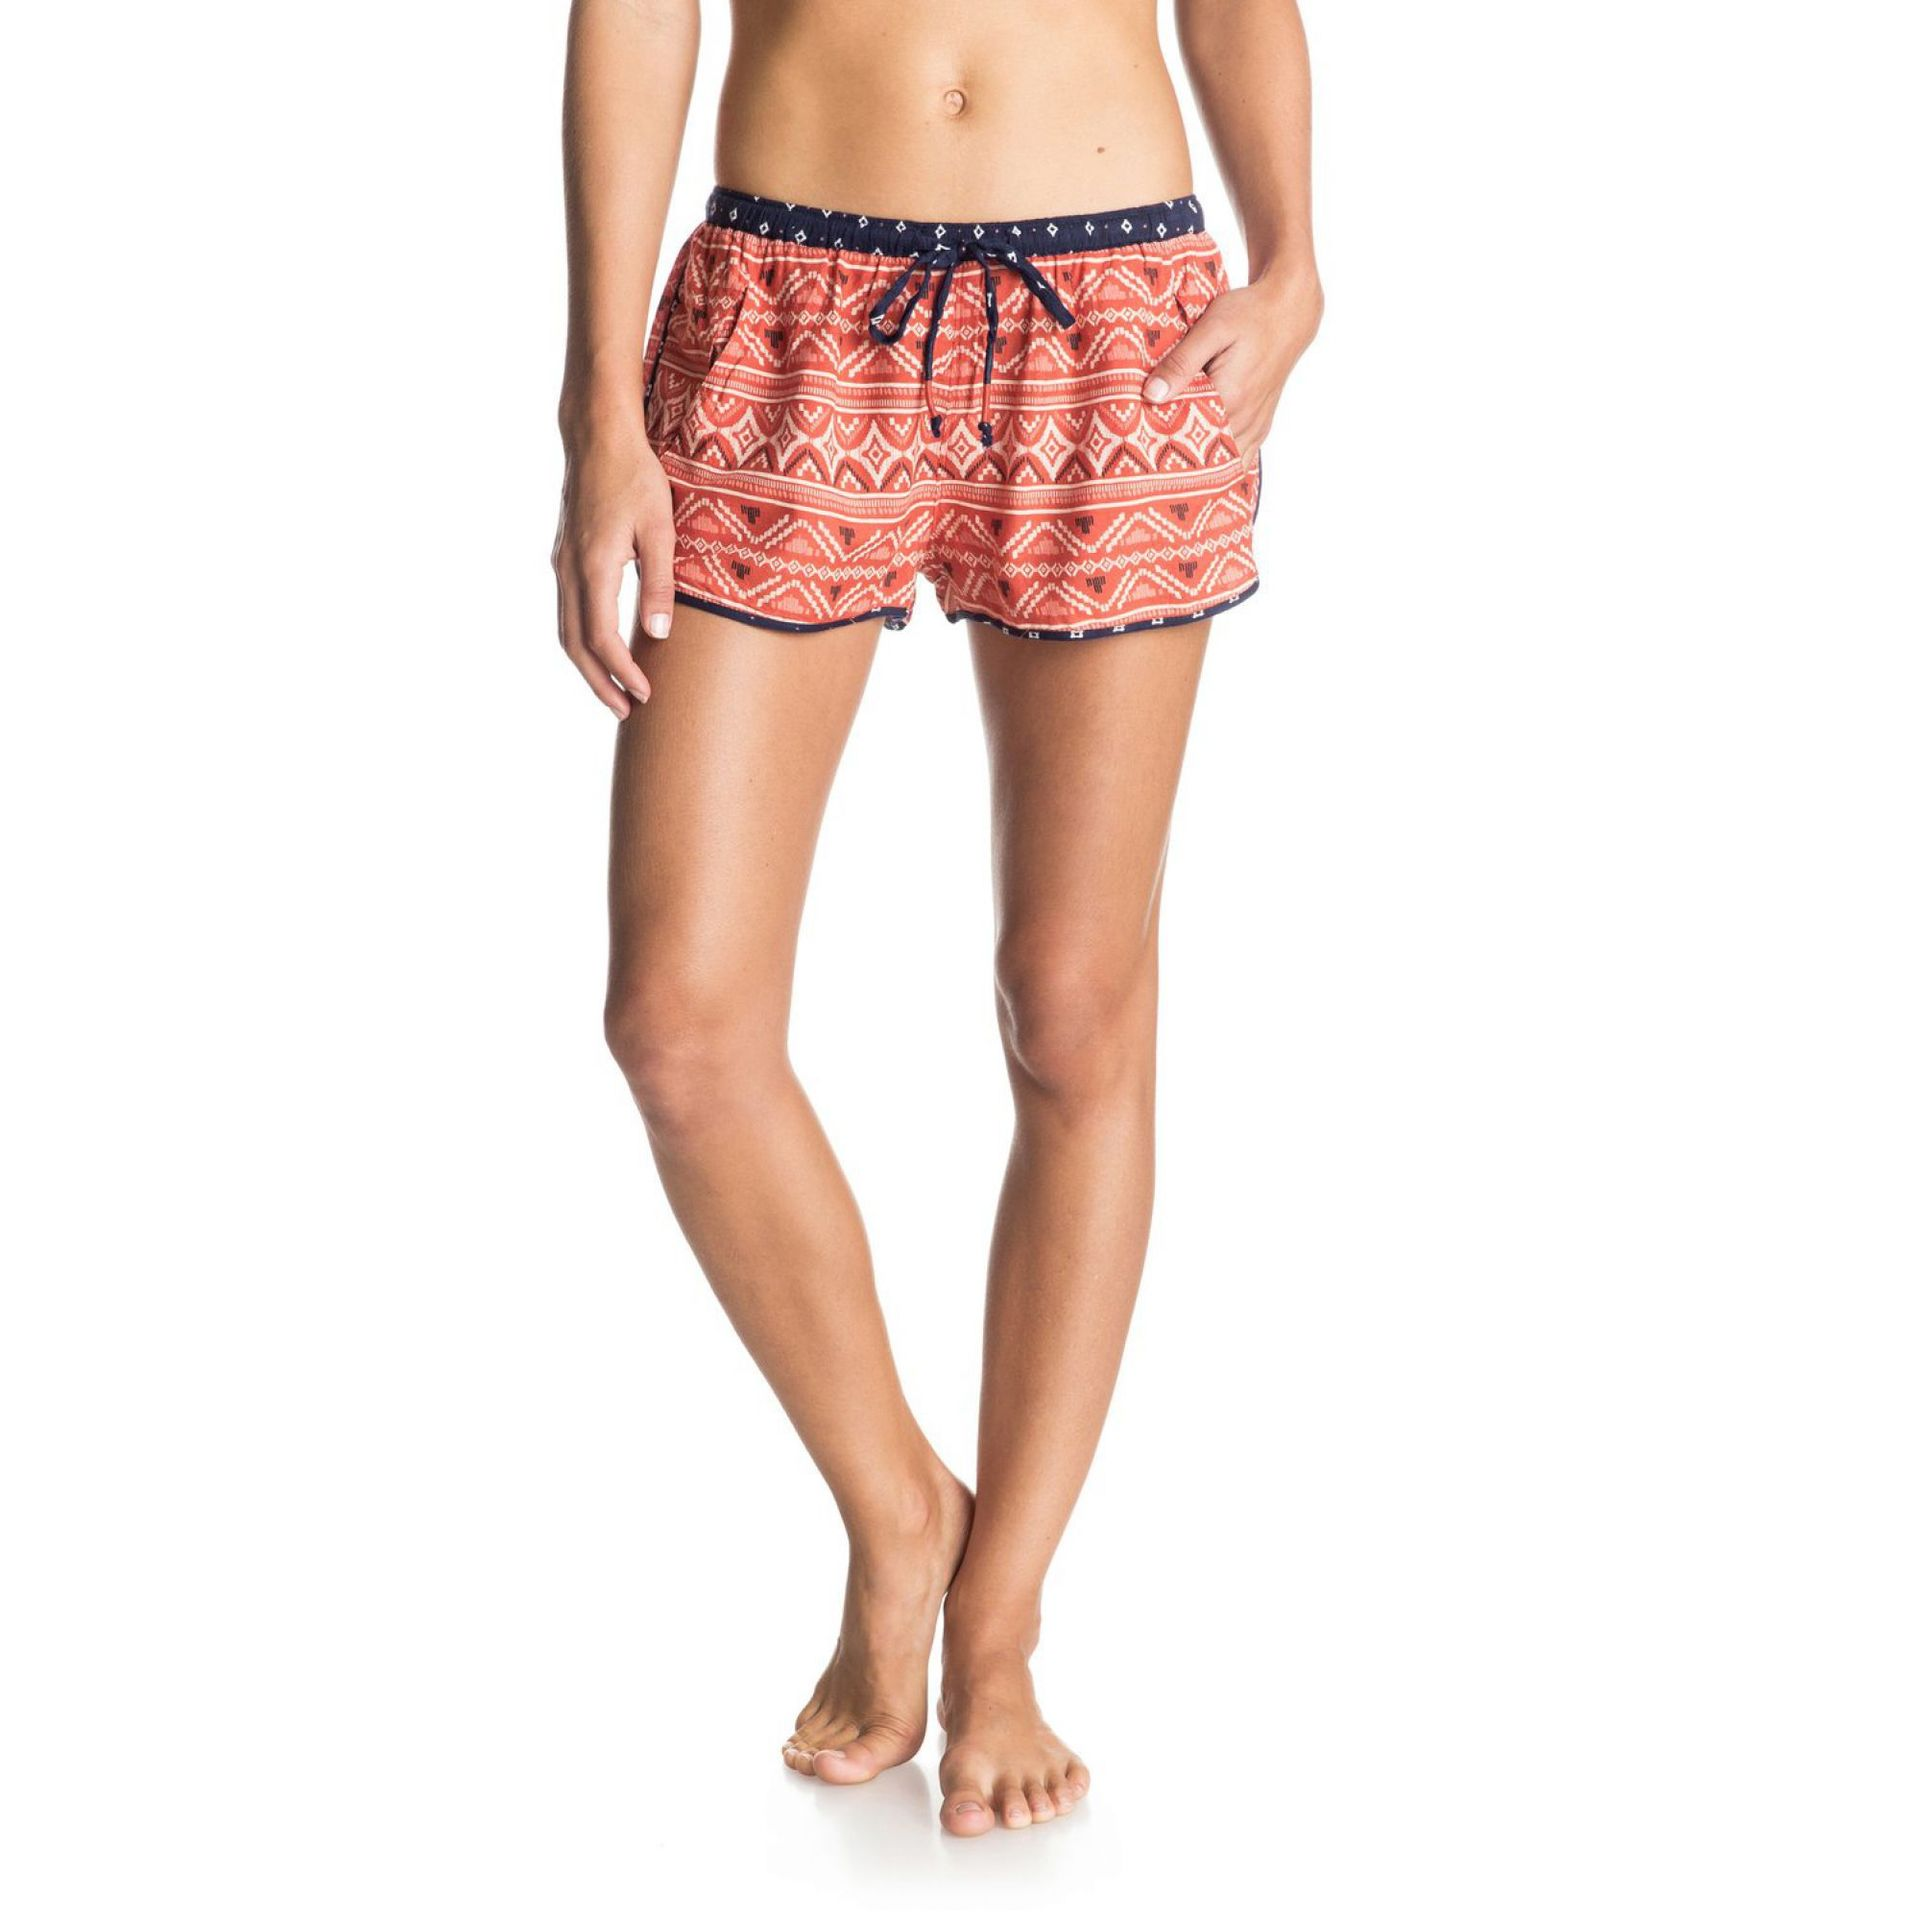 SZORTY ROXY RUN AWAY BEACH SHORTS 2